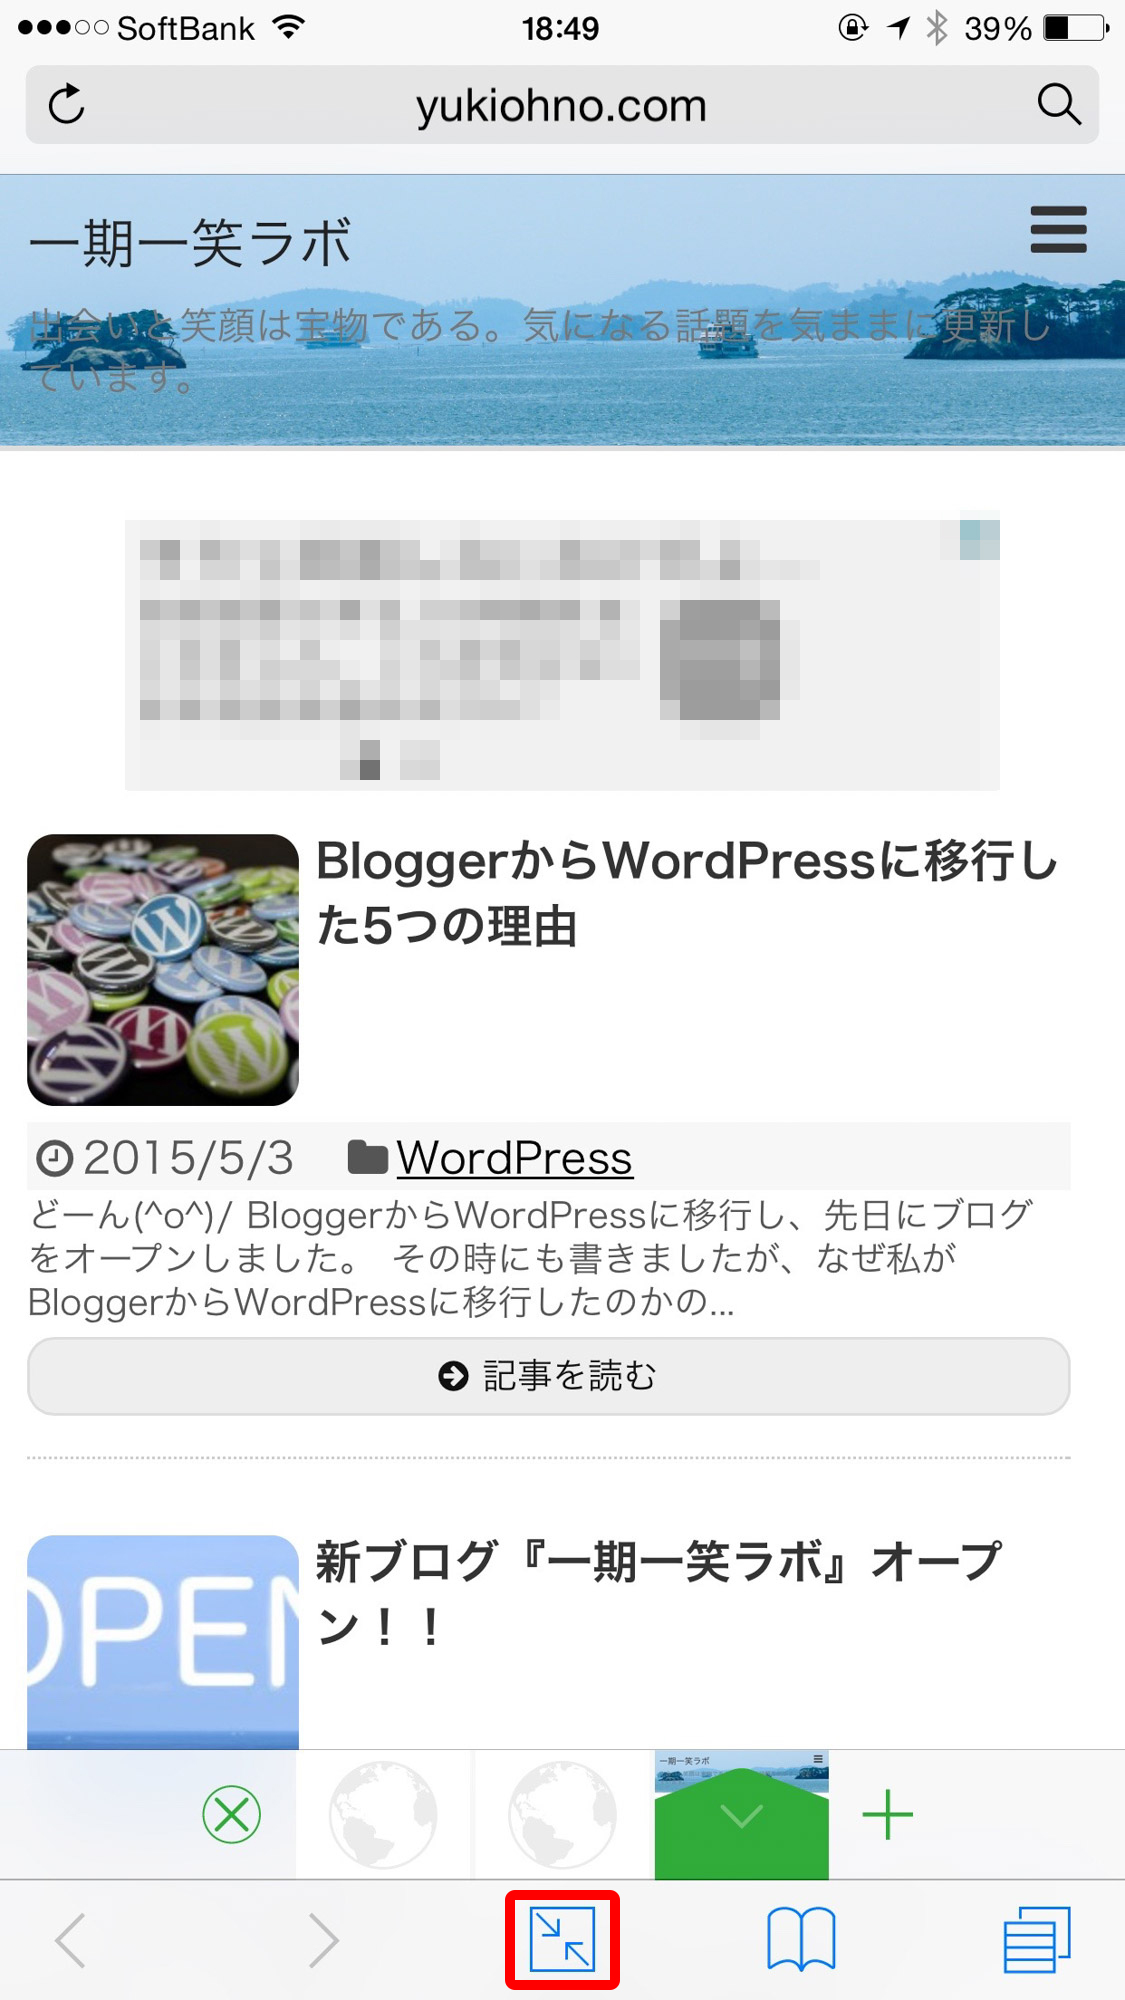 browser-wp-4289